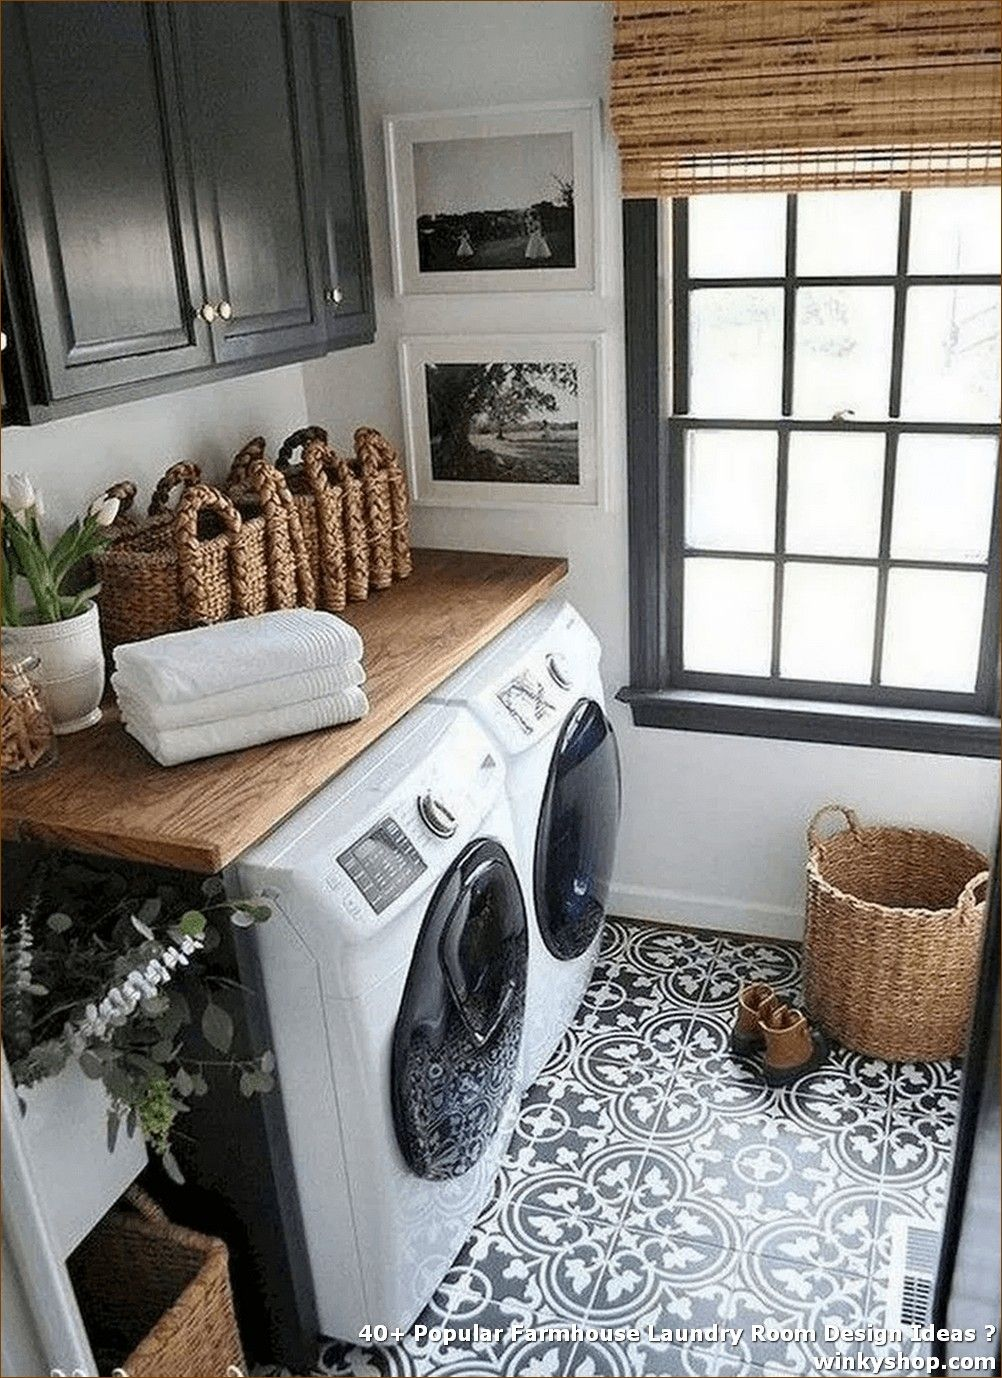 40+ Popular Farmhouse Laundry Room Design Ideas ✓